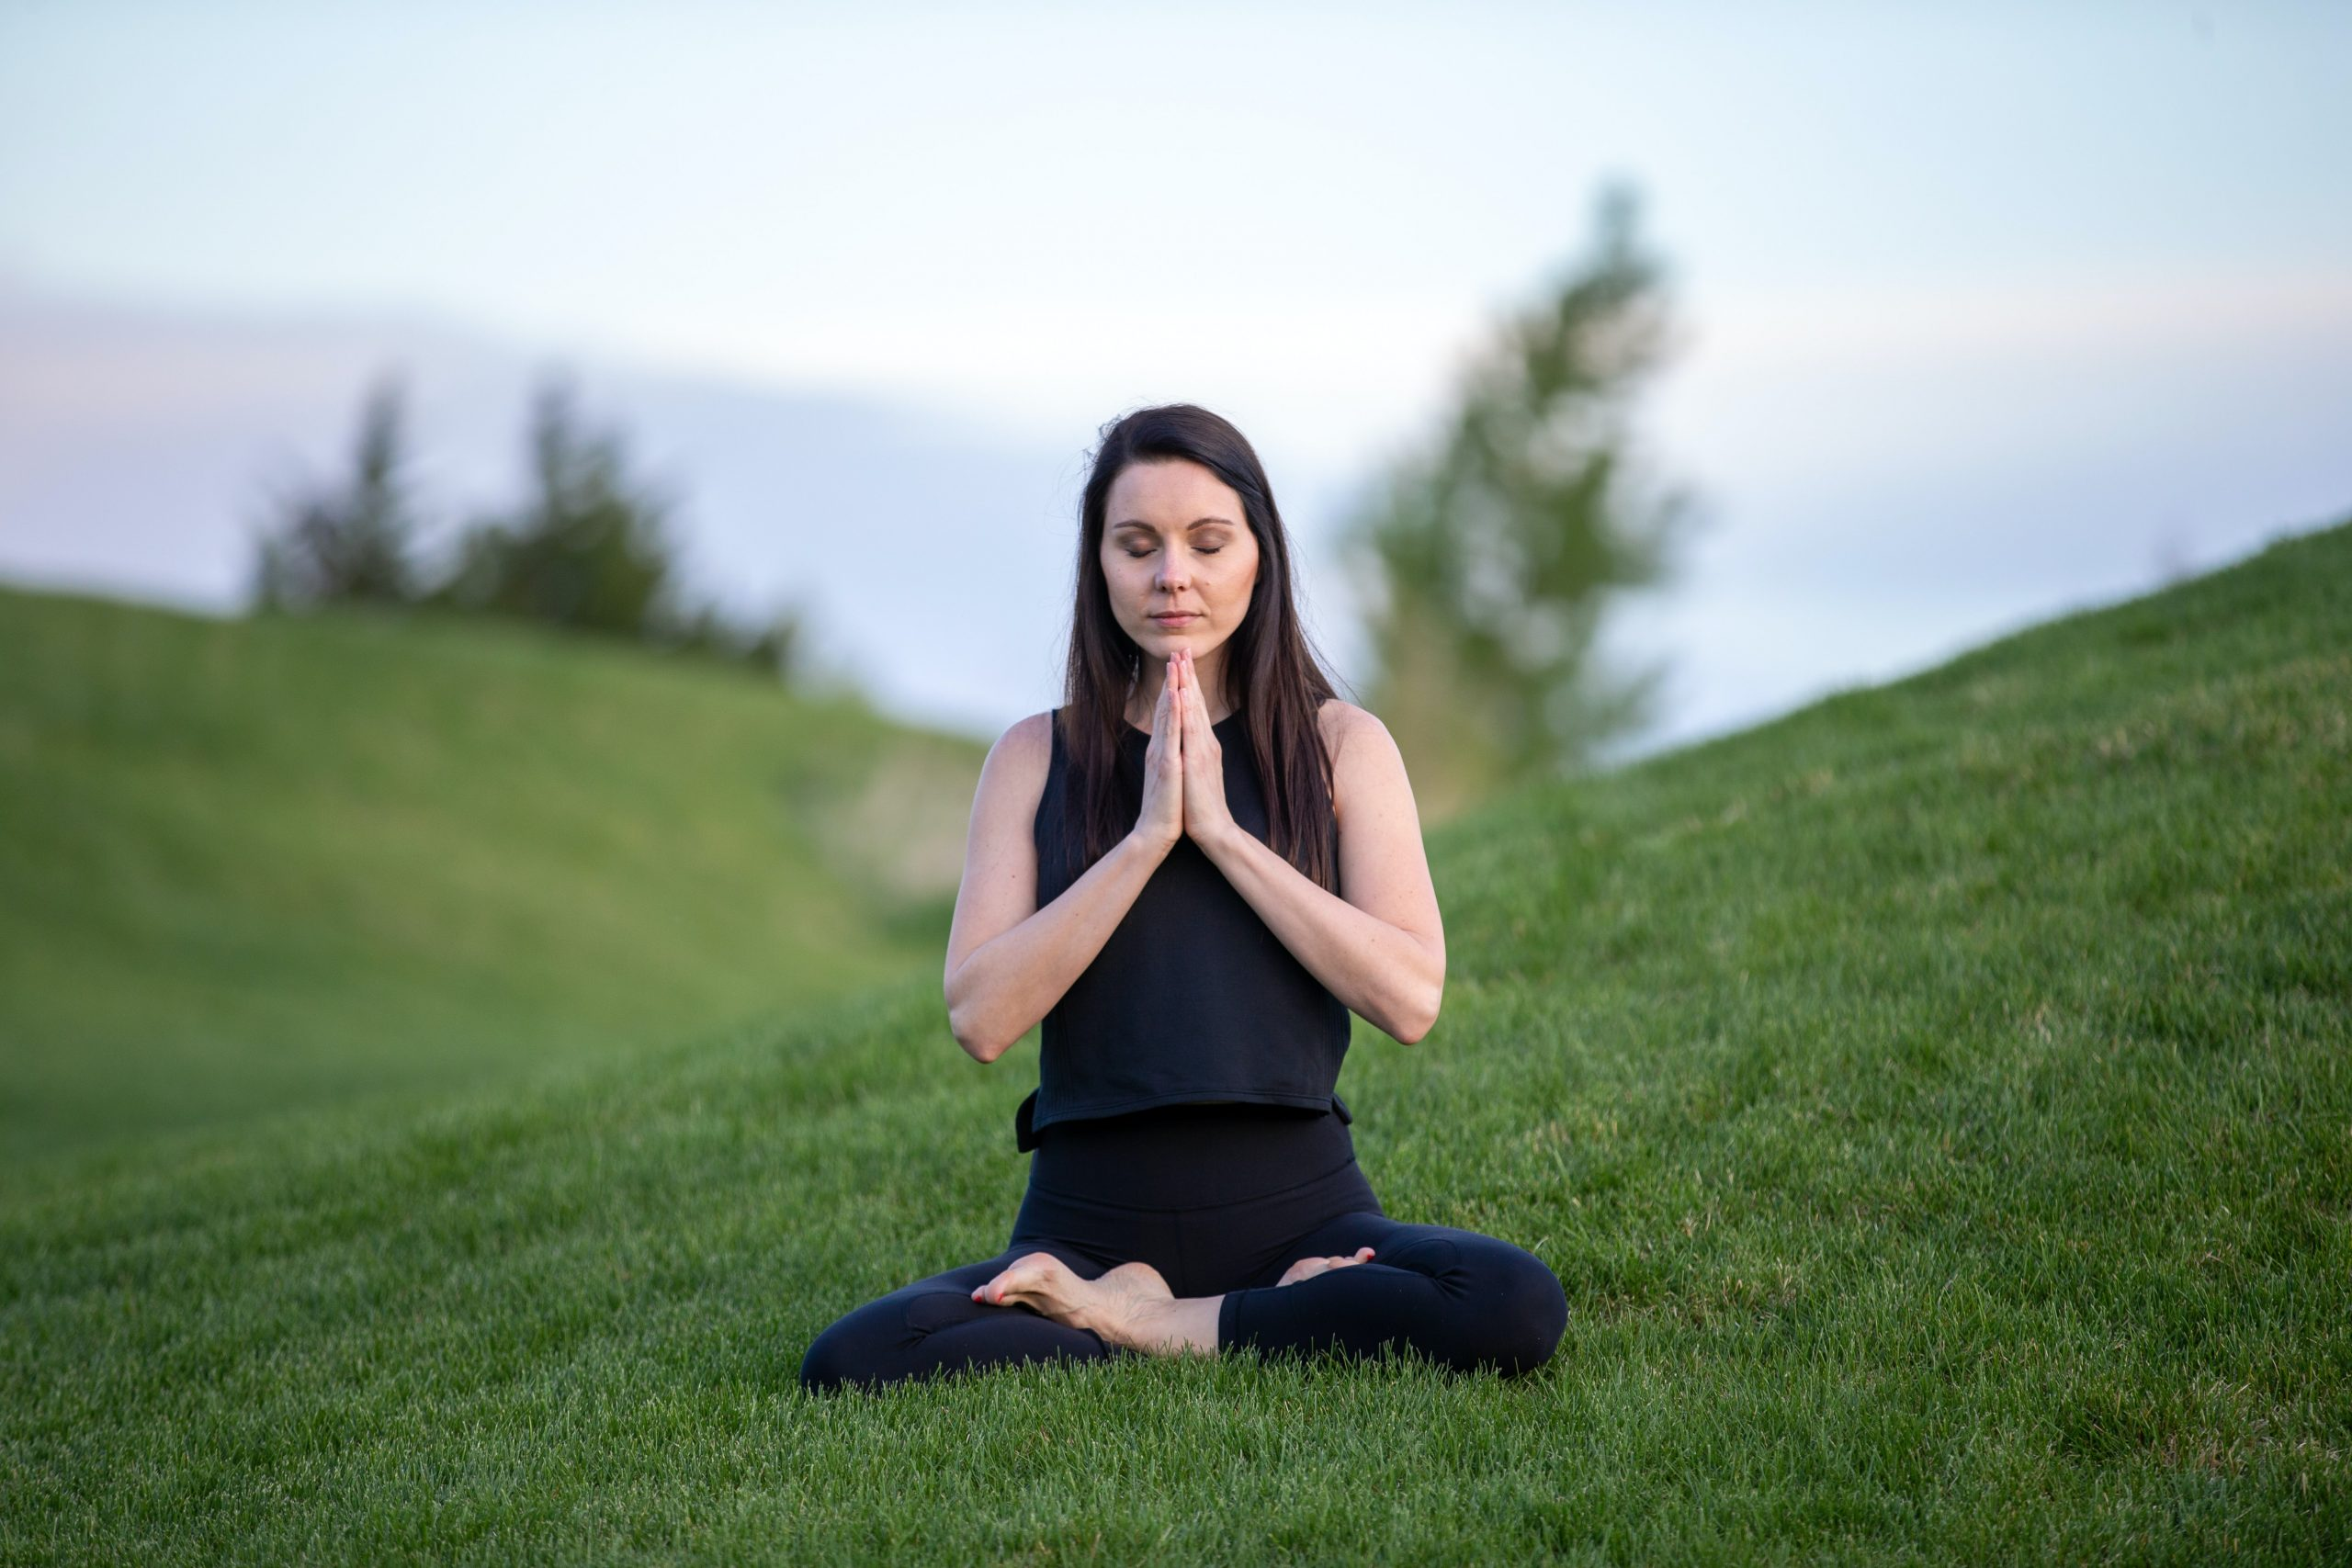 Woman wearing a black outfit sitting crosslegged with folded hands and closed eyes, sitting outdoors